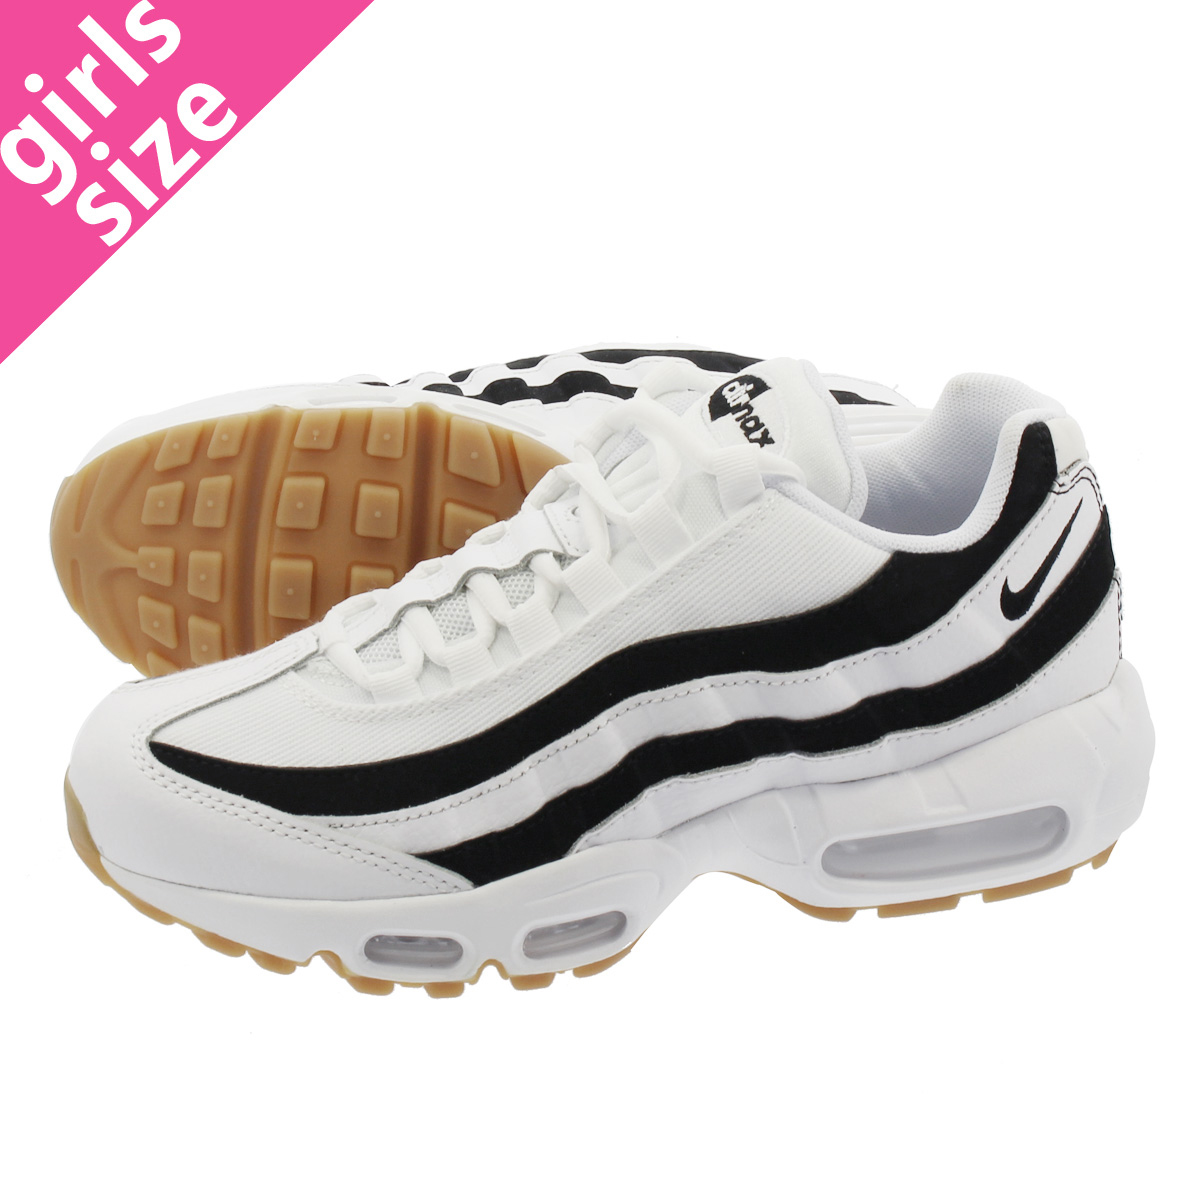 18da328e9ca LOWTEX PLUS  NIKE WMNS AIR MAX 95 Nike women Air Max 95 WHITE GUM LIGHT  BROWN BLACK 307